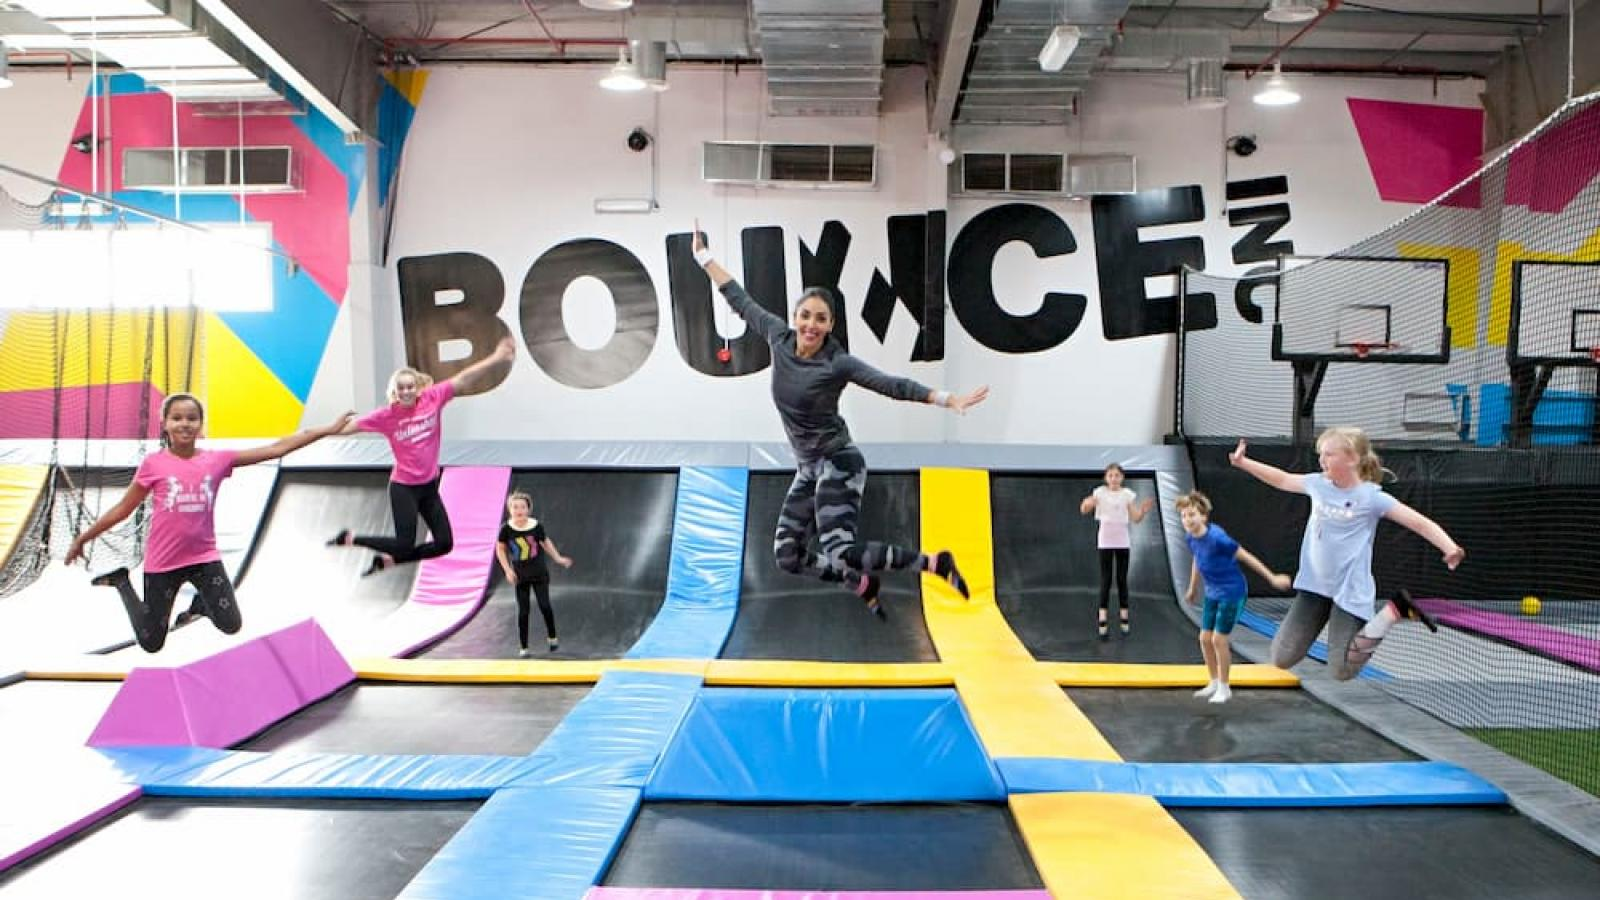 Double the fun at BOUNCE with the two hour super pass